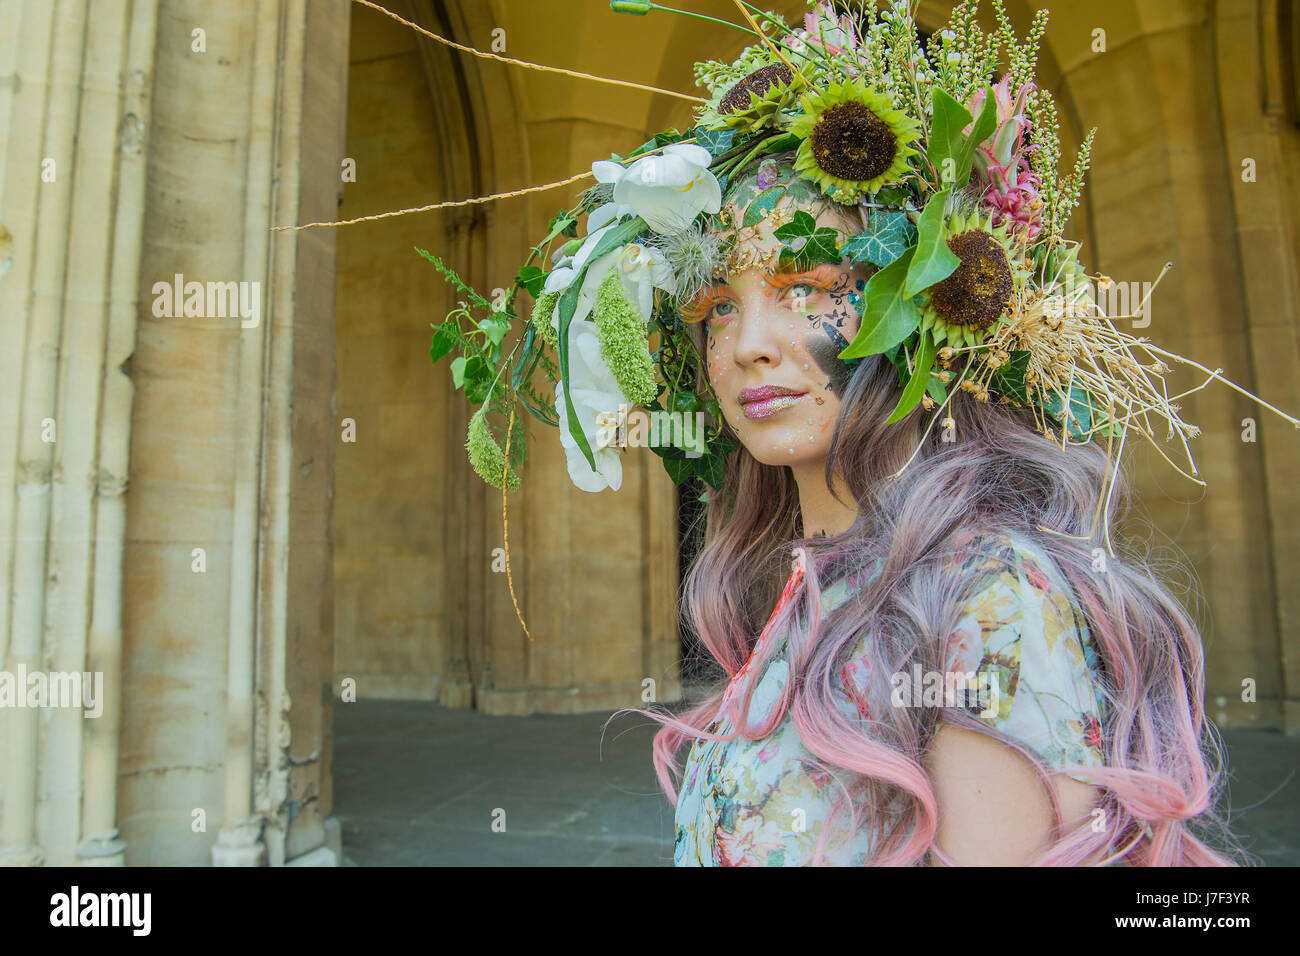 940ffd18221c3e Co Couture Stock Photos   Co Couture Stock Images - Alamy